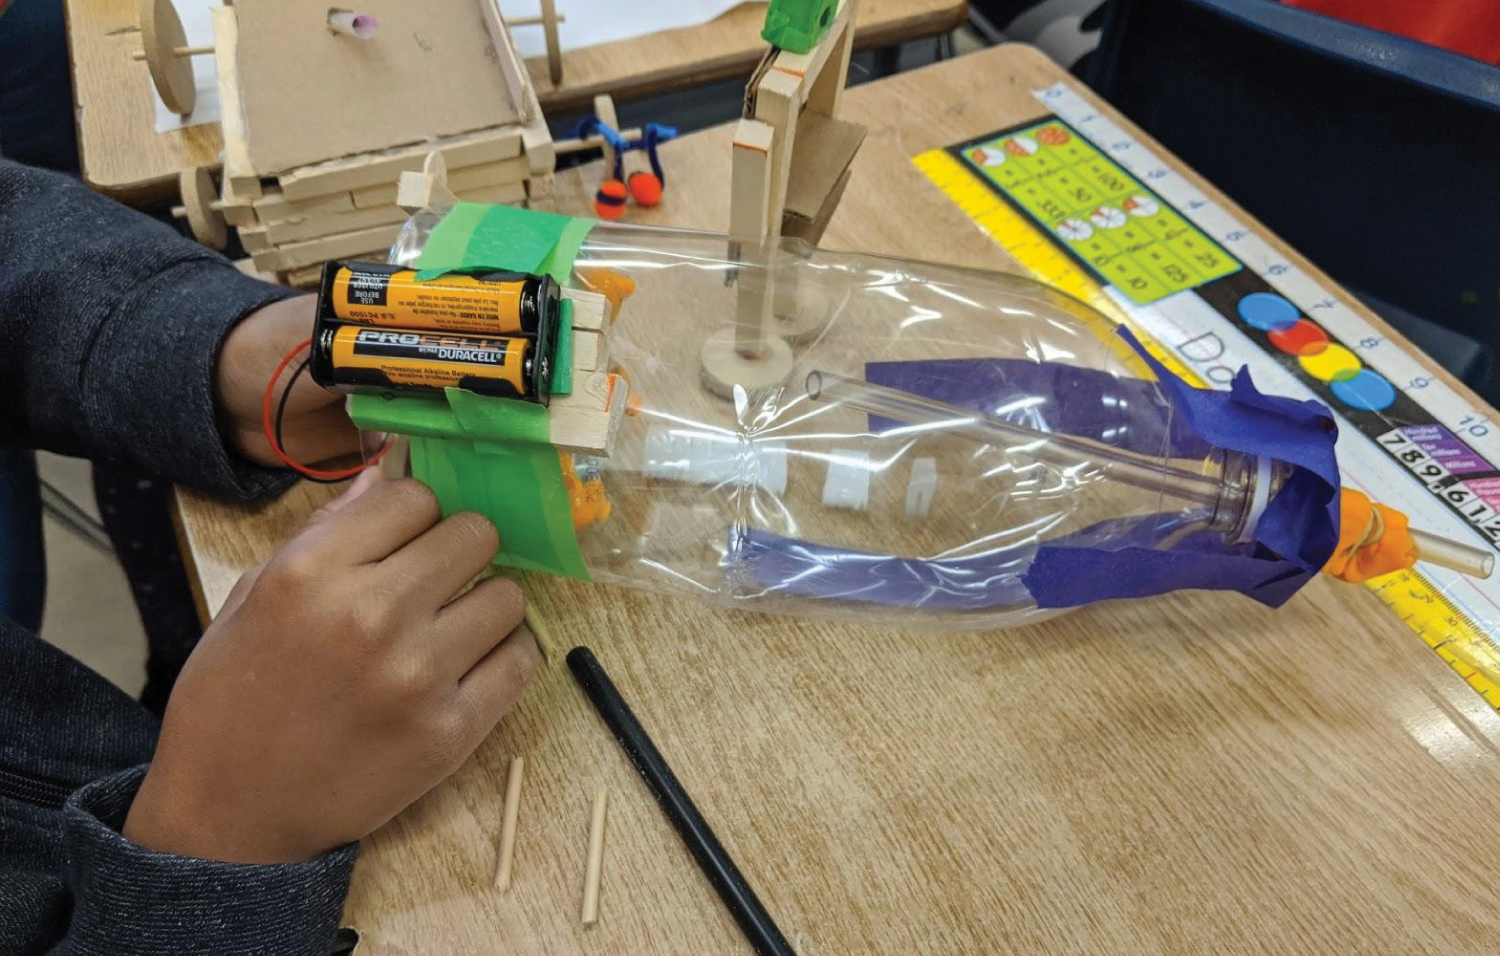 A student makes adjustments to the batteries attached to their engineering project